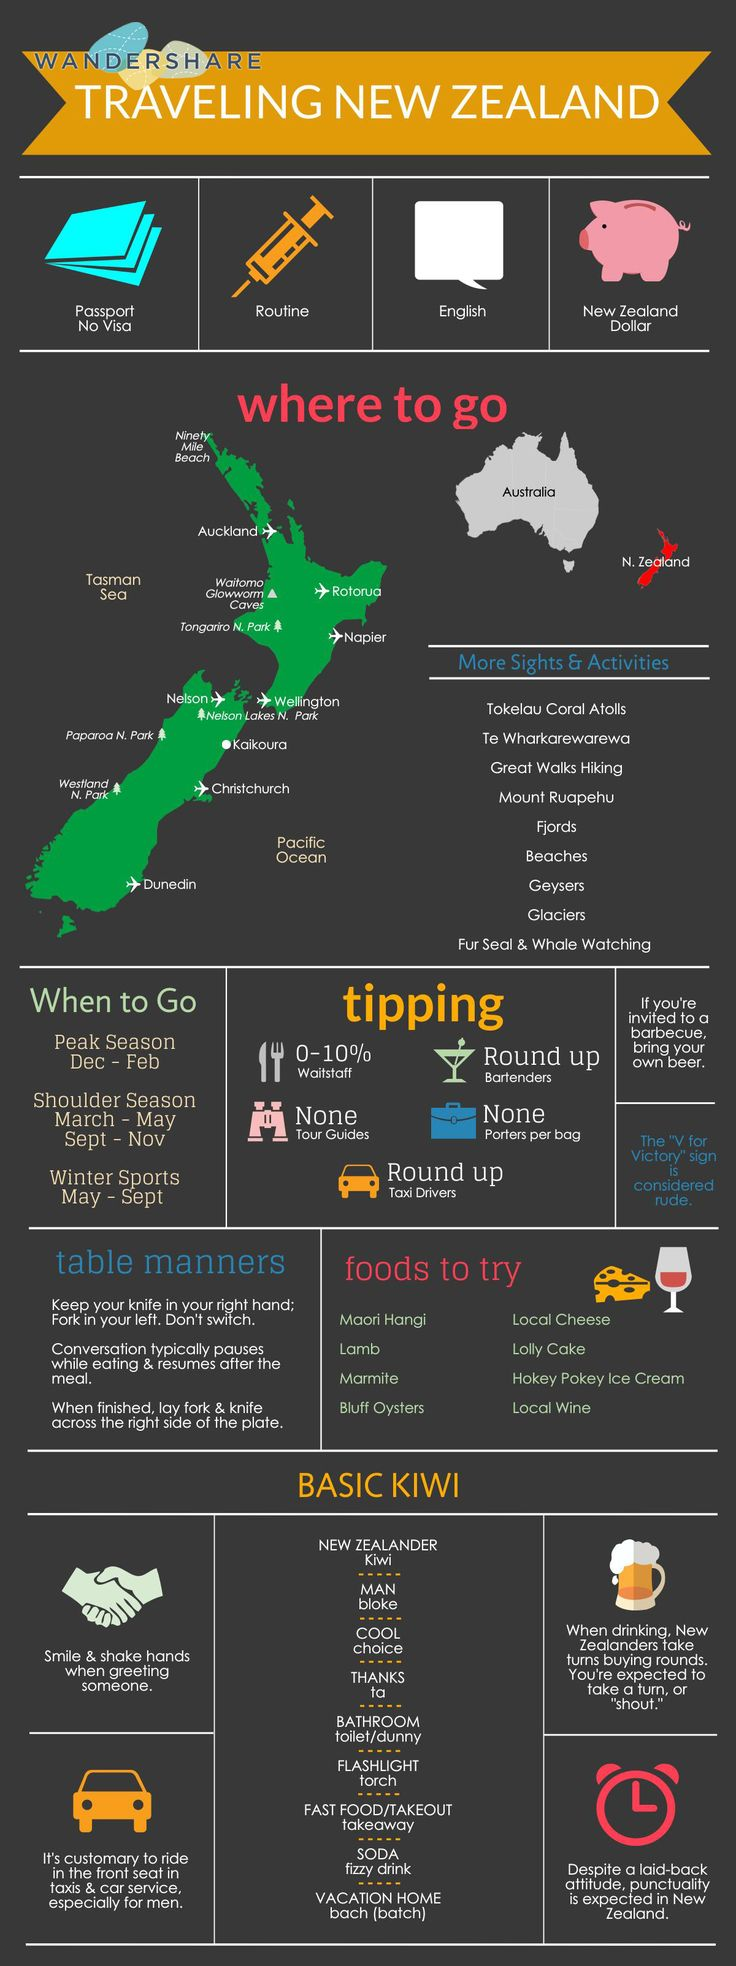 New Zealand Travel Cheat Sheet; Sign up at www.wandershare.com for high-res image.